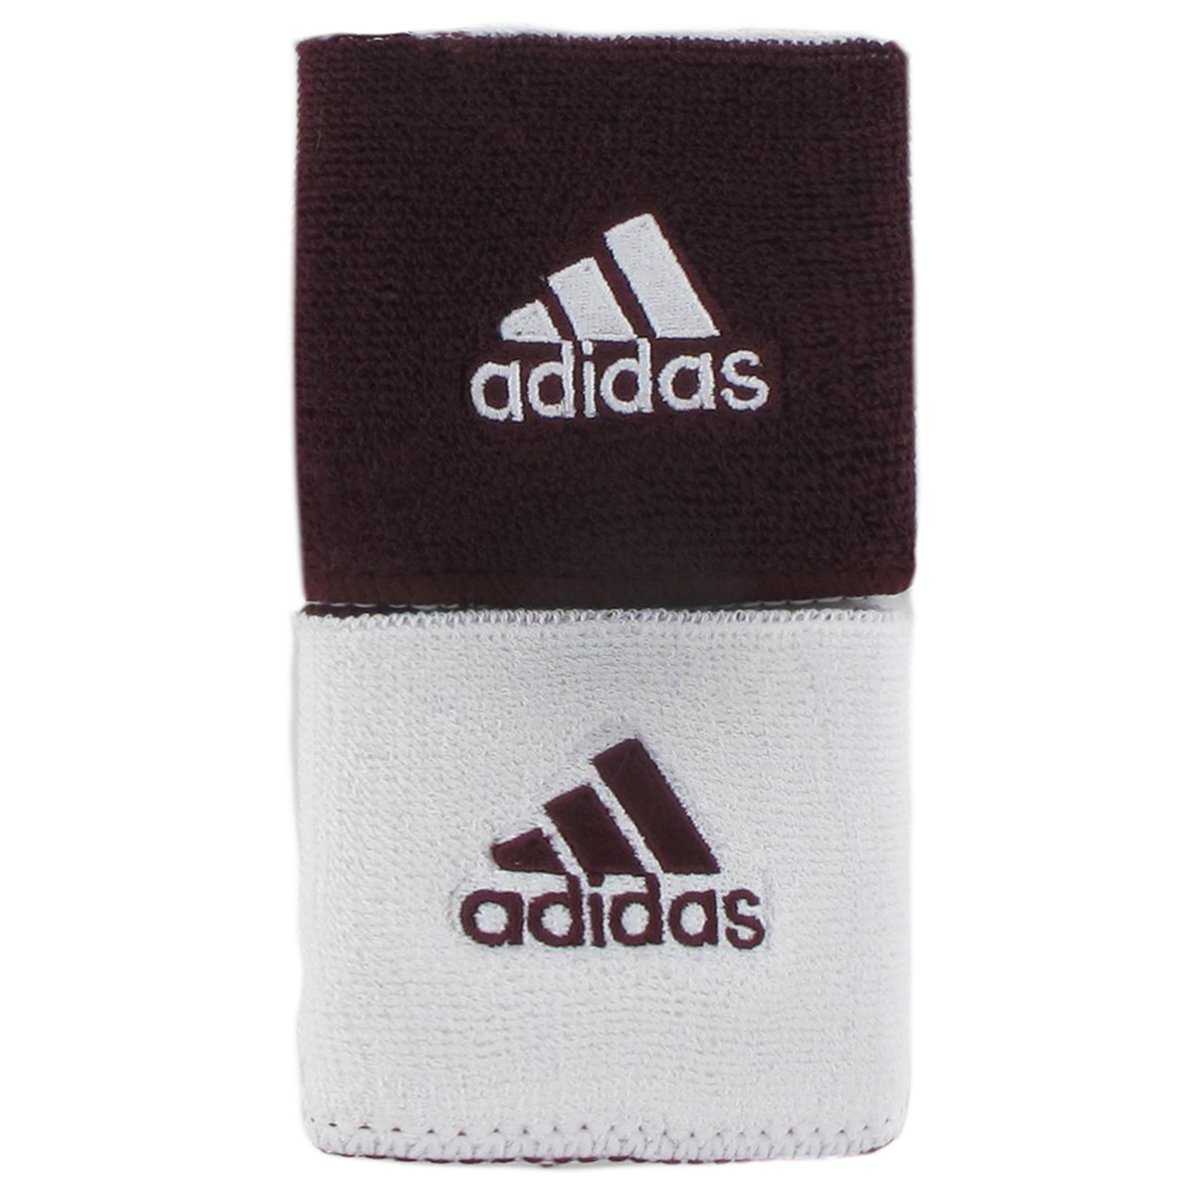 adidas Interval Reversible Wristband Agron Hats & Accessories 513-39